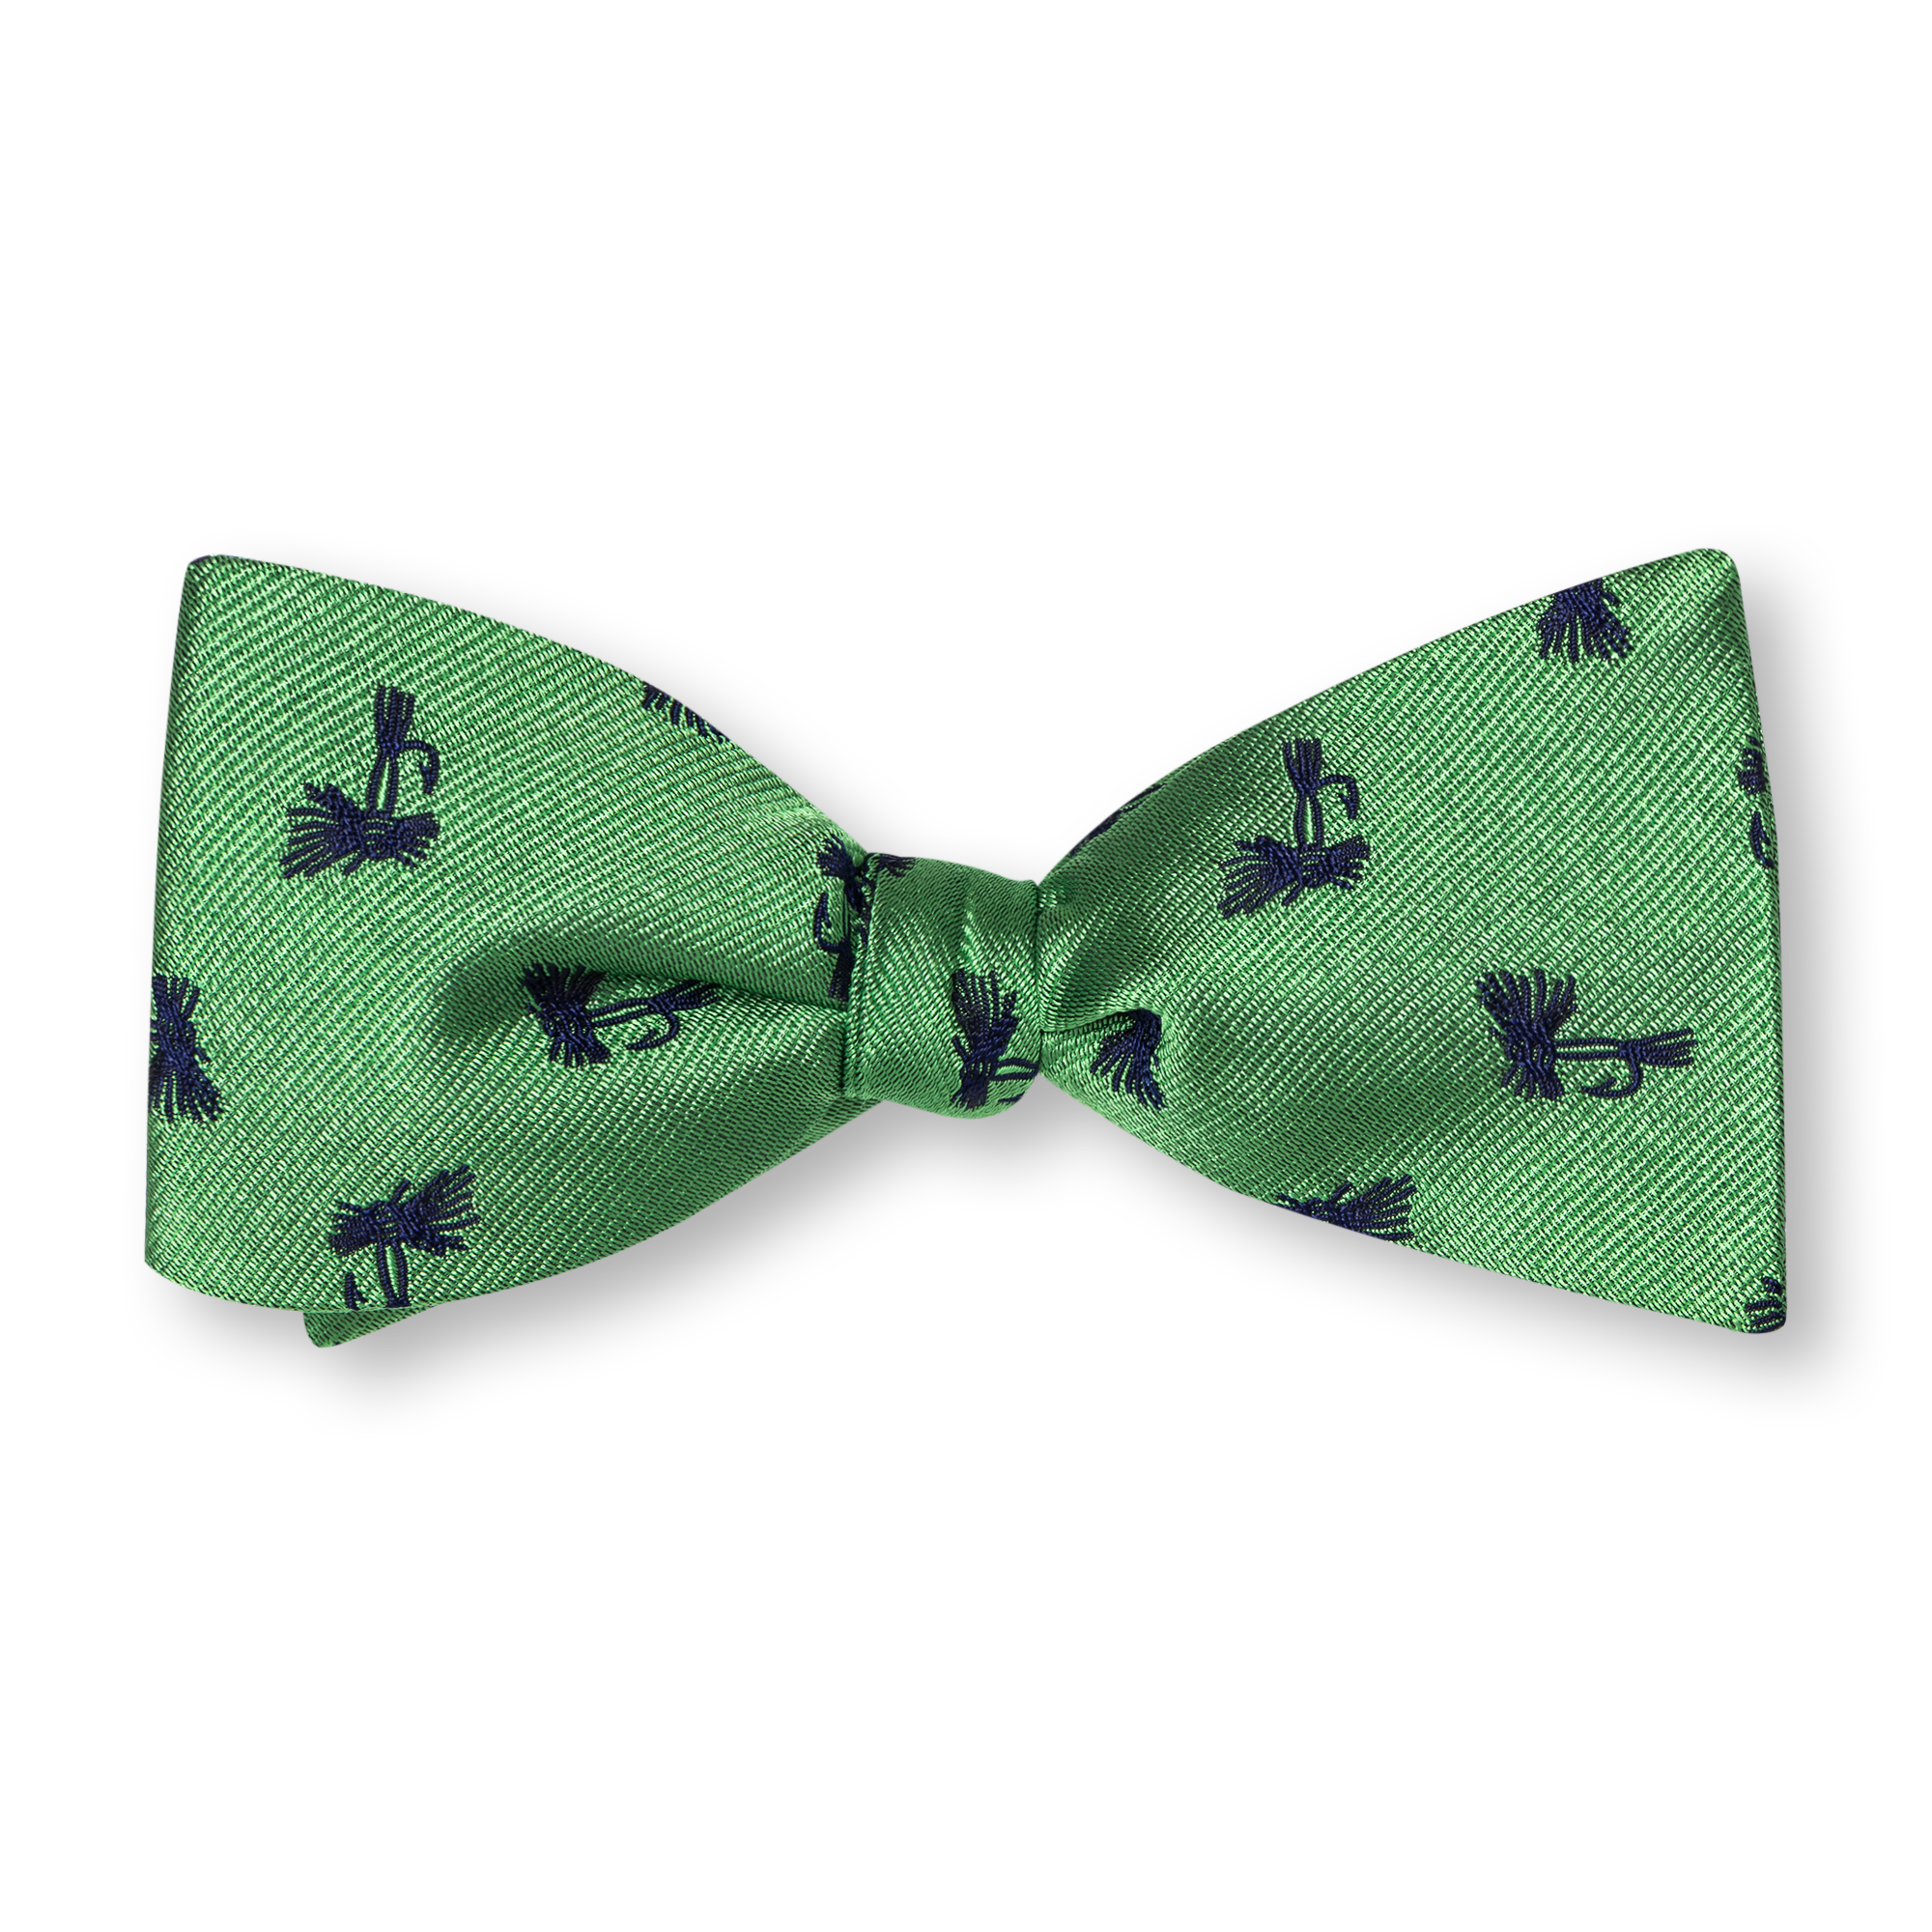 green Bow ties product photography